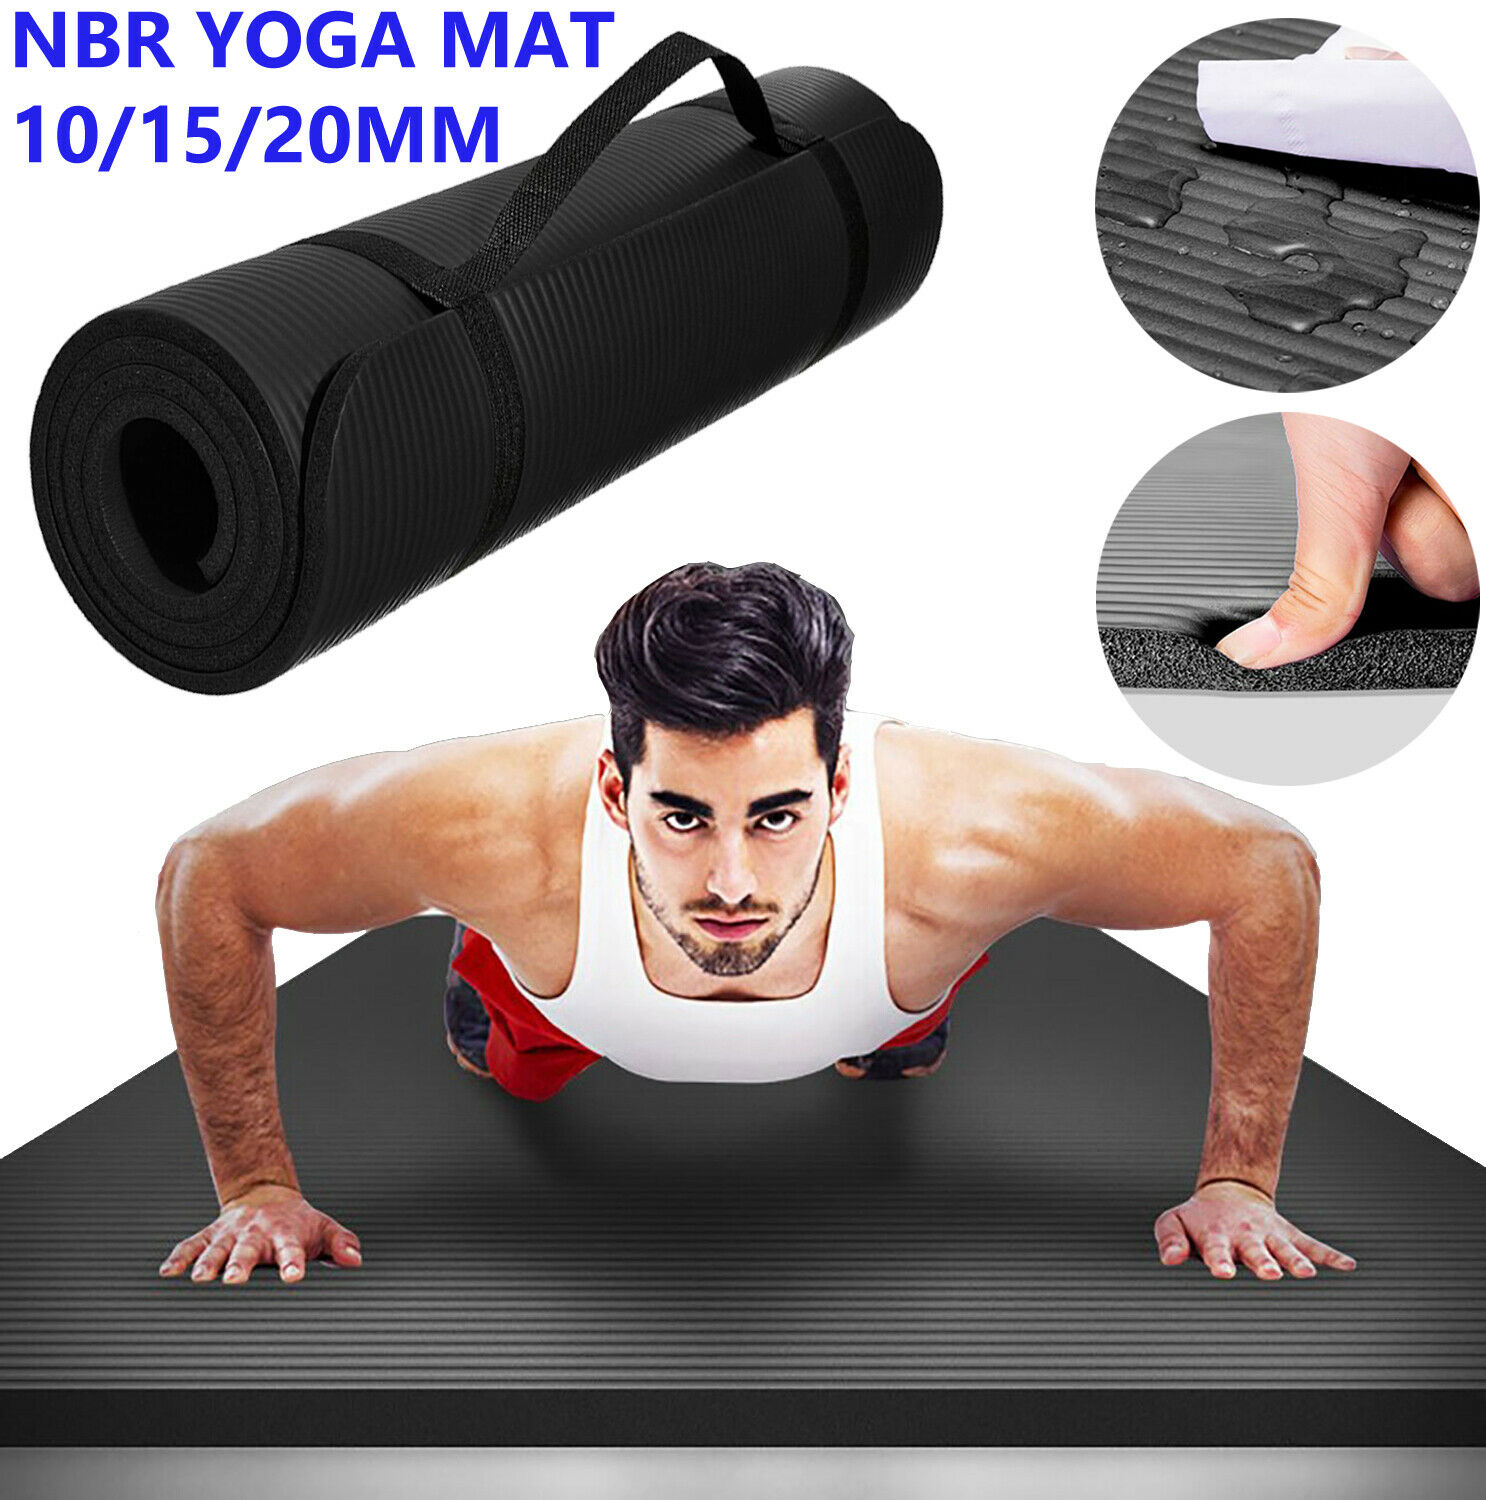 10 15 20MM Thick Yoga Mat Pad Non Slip Exercise Fitness Gym Pilates NBR Durable